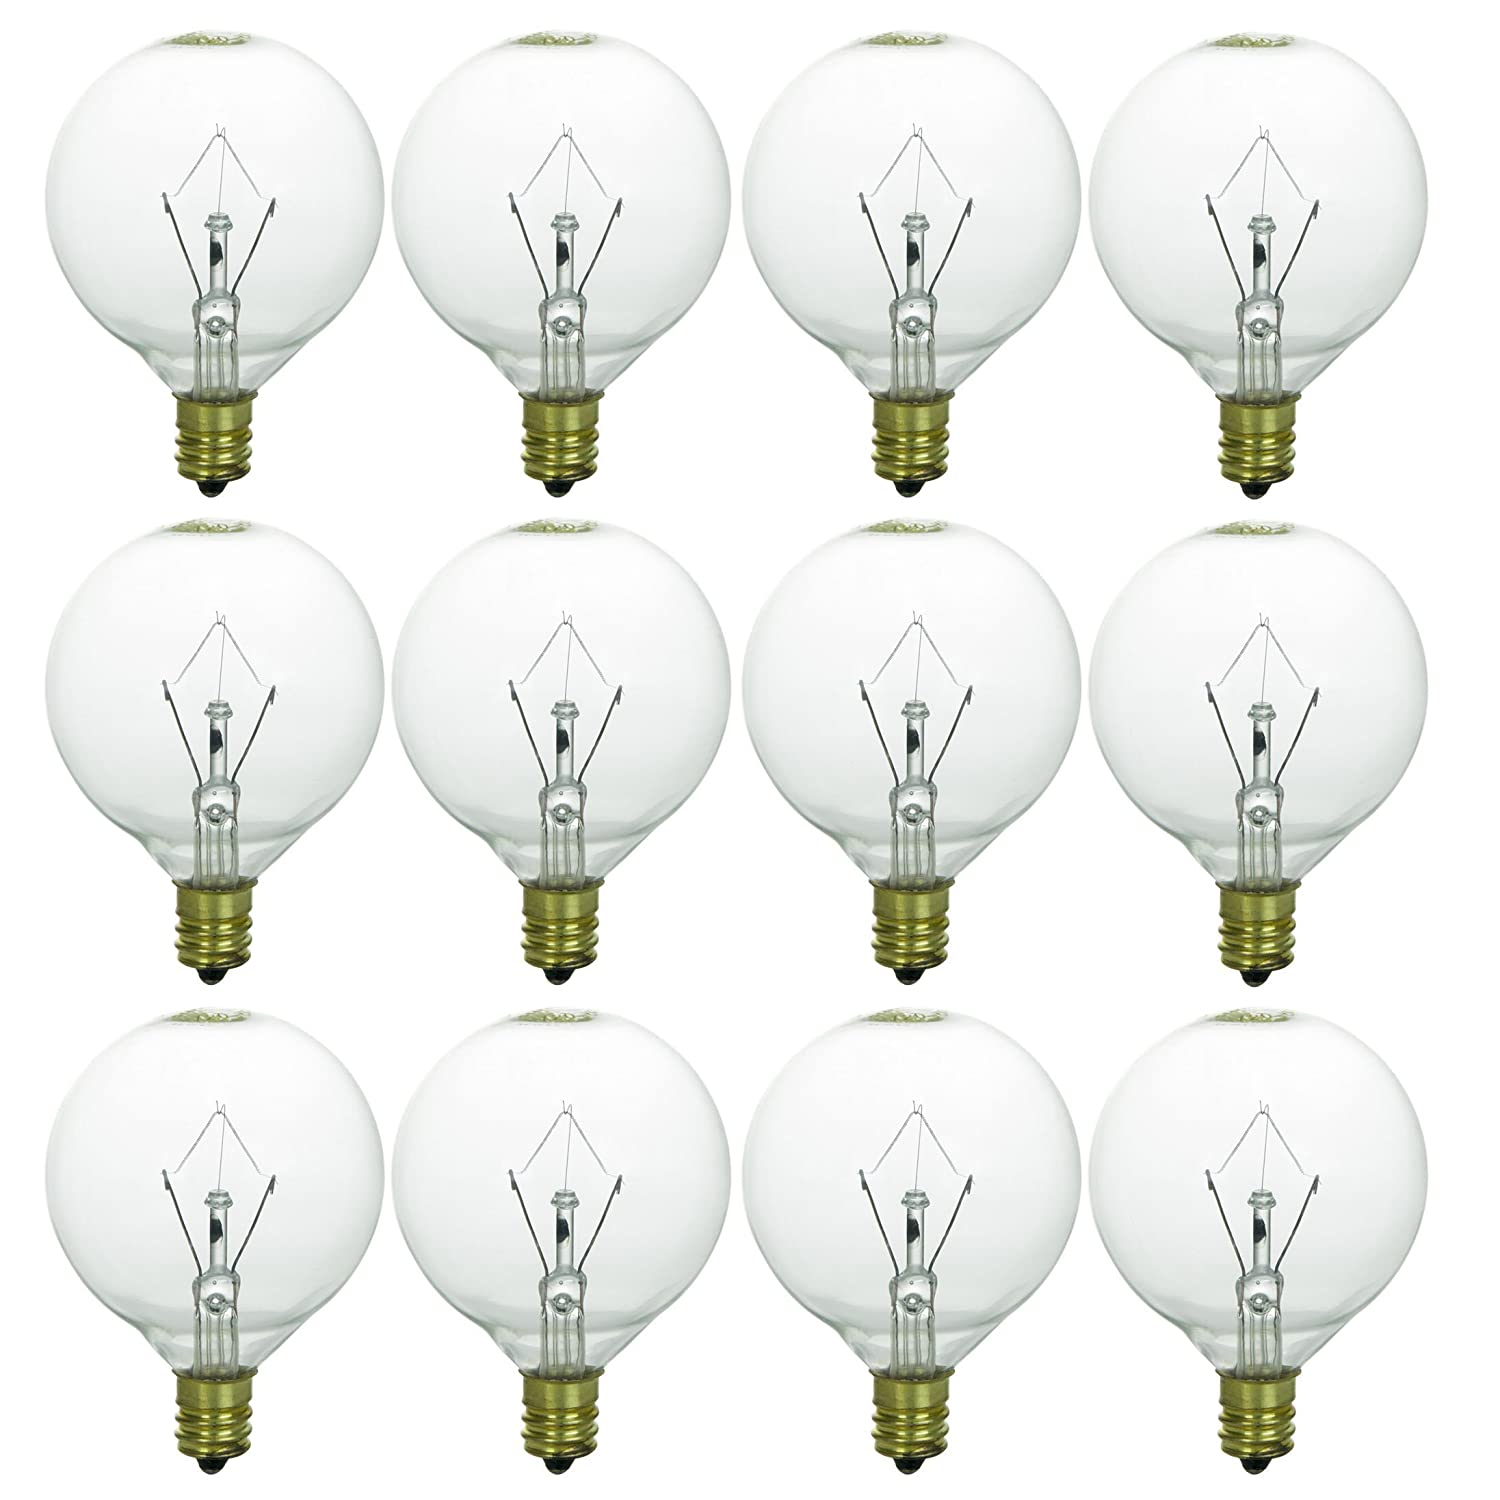 Sunlite 25G16.5/CL/12PK 01650-12-SU 25 Watts, Candelabra Base (E12), 120 Volt, Clear, Incandescent, Dimmable, 12 Pack, 32K - Warm White, 12 Bulbs